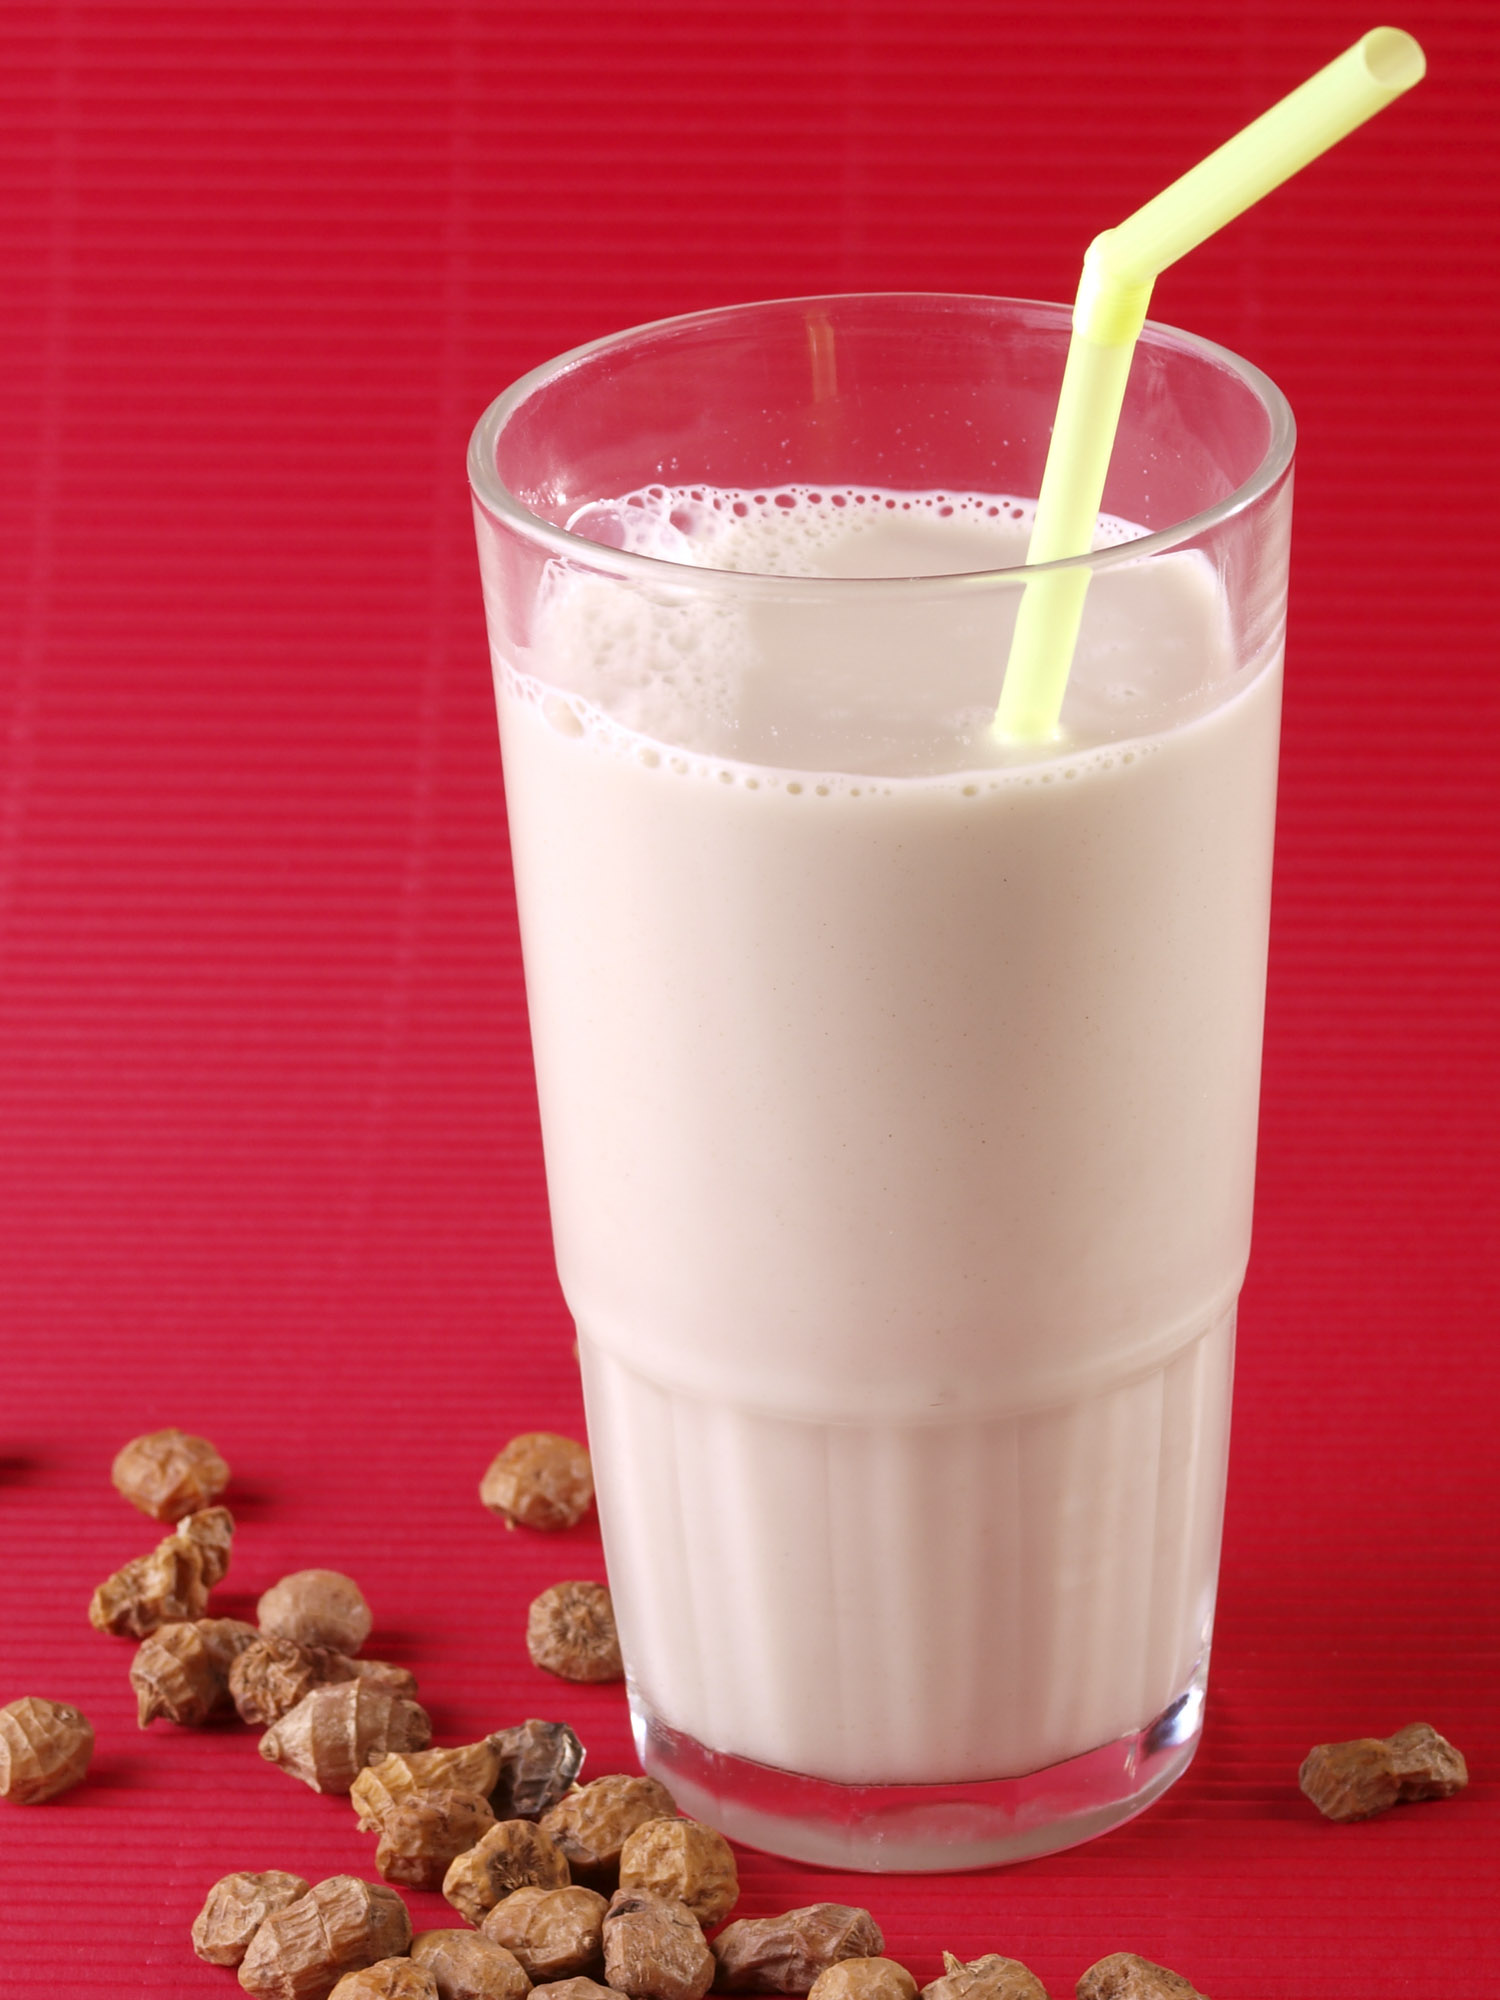 Mexican drink horchata on red background